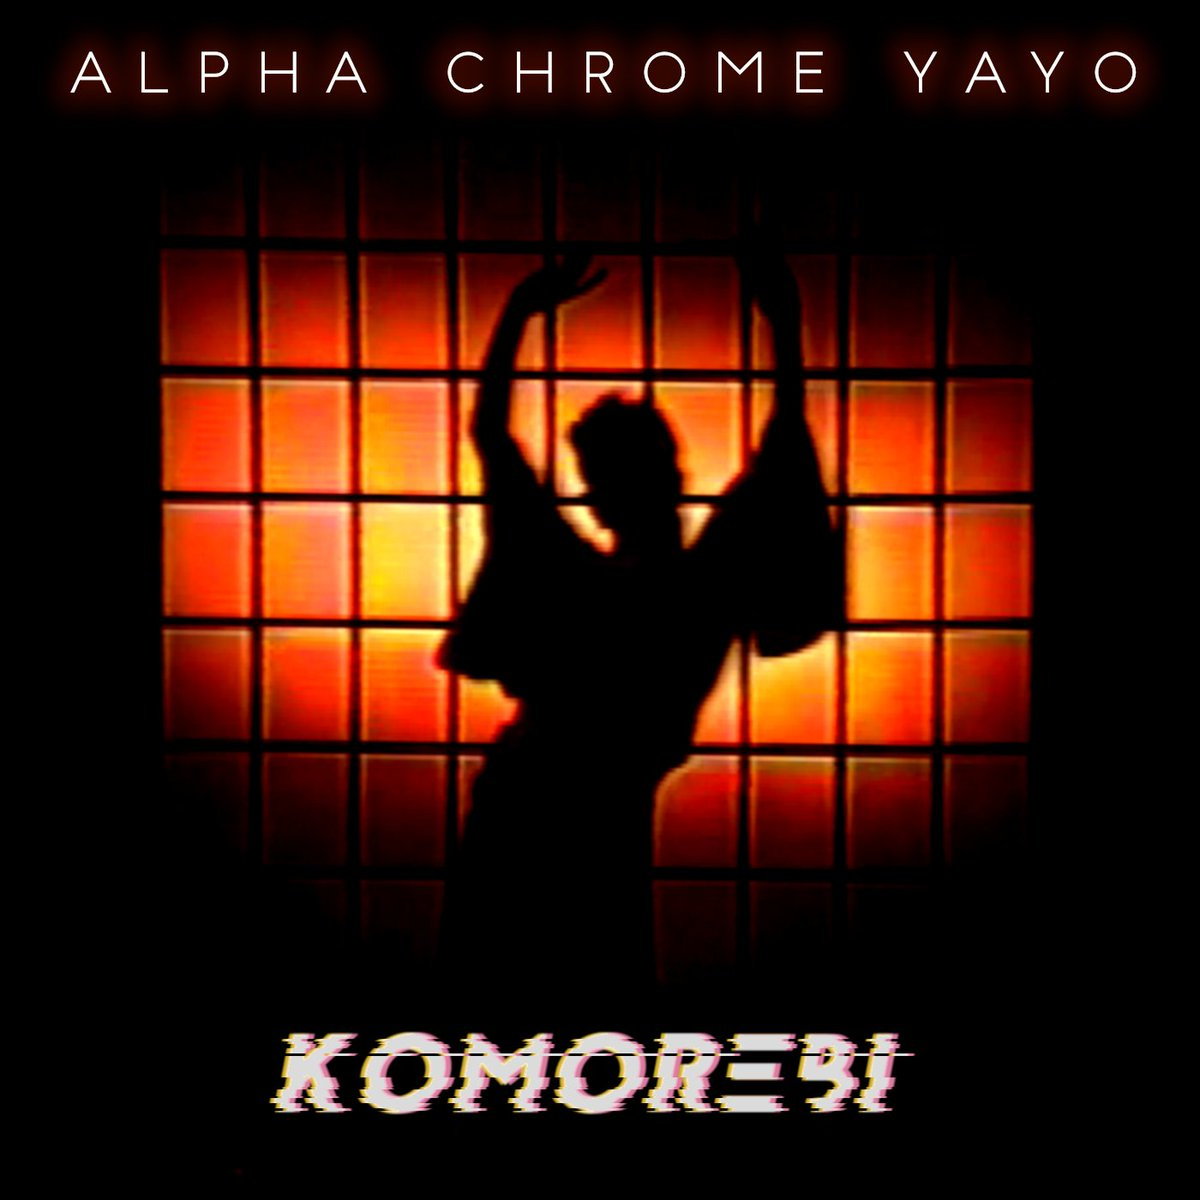 test Twitter Media - You know what's the perfect soundtrack to a chill saturday? Komorebi, the latest @alphachromeyayo.  It's really good! https://t.co/f1GANkJ3i4